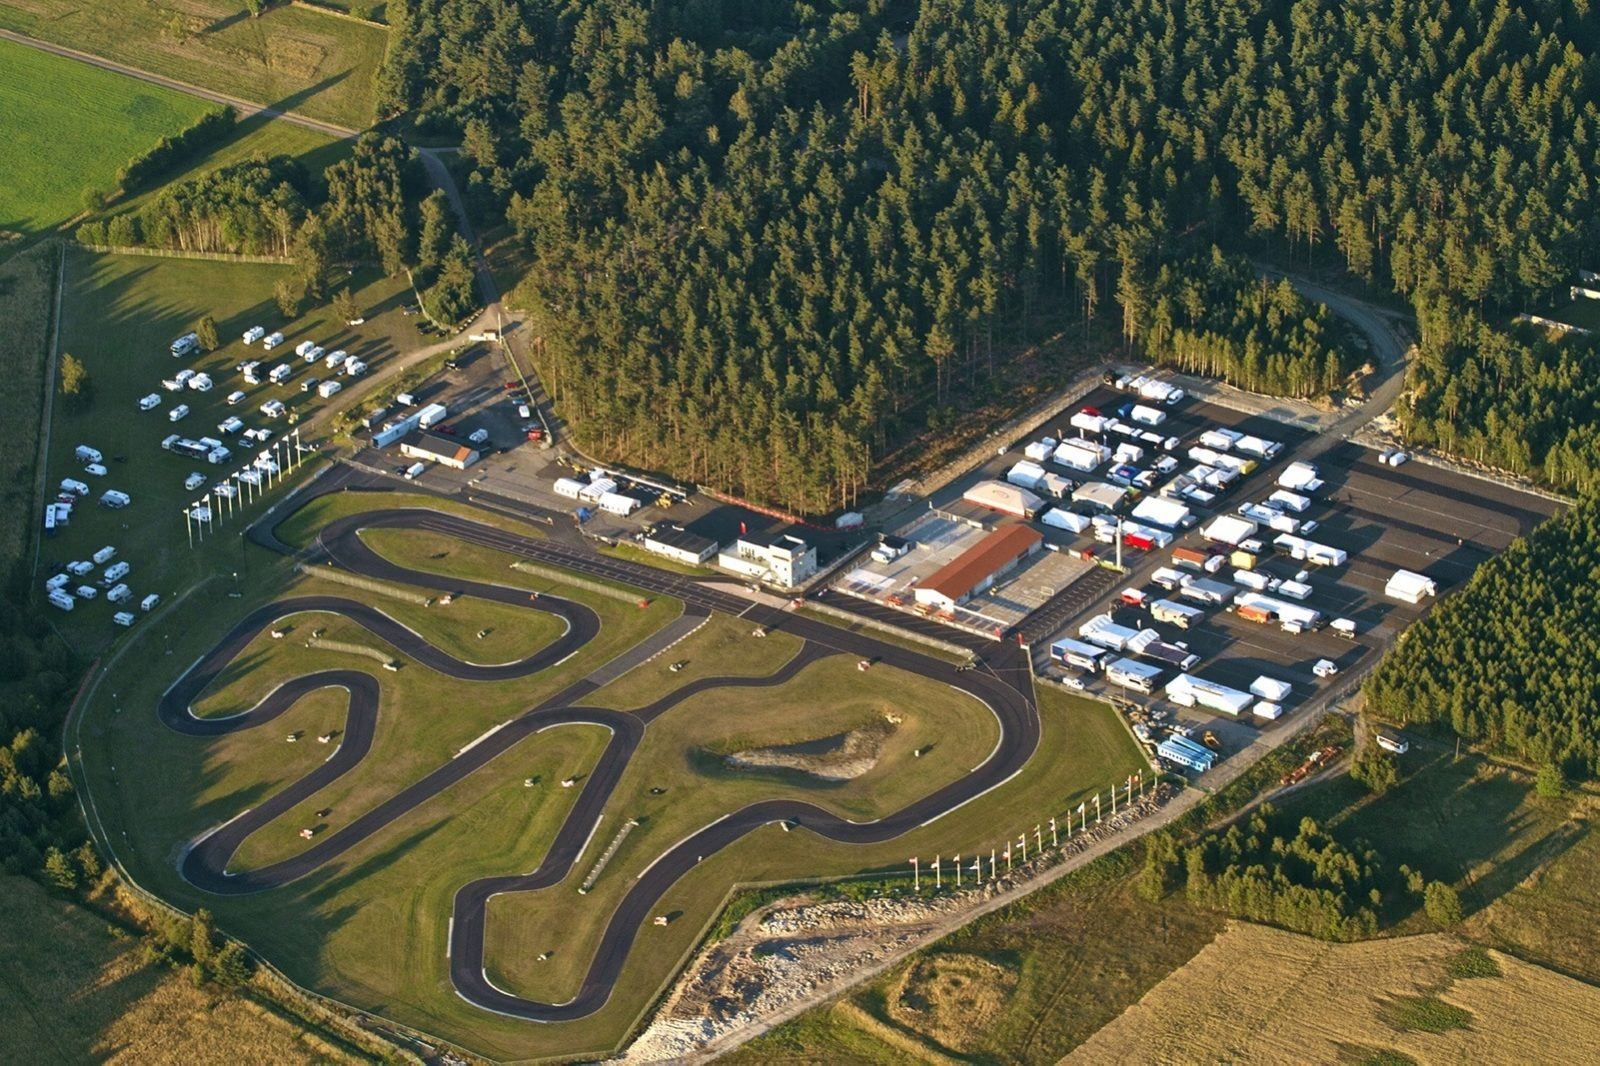 Kristianstad Karting Club aerial view